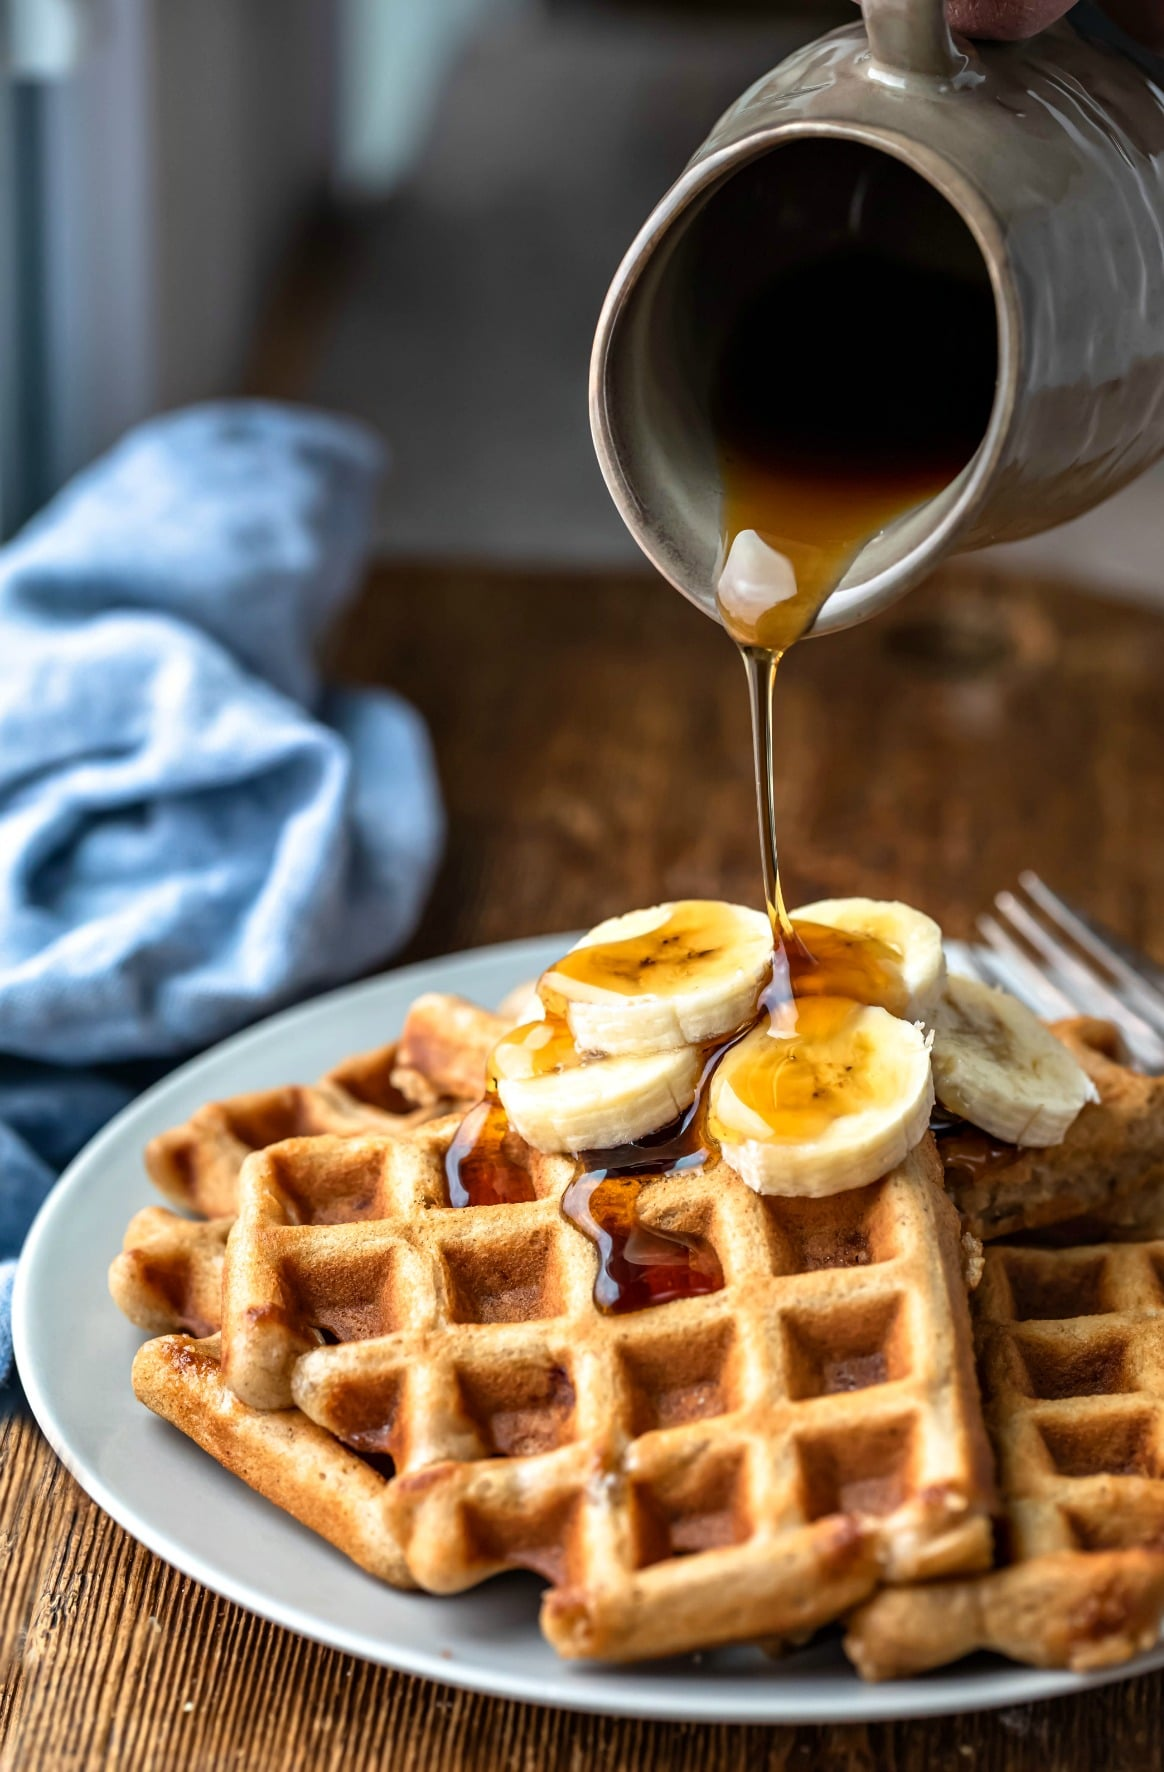 Maple syrup pouring onto banana bread waffles